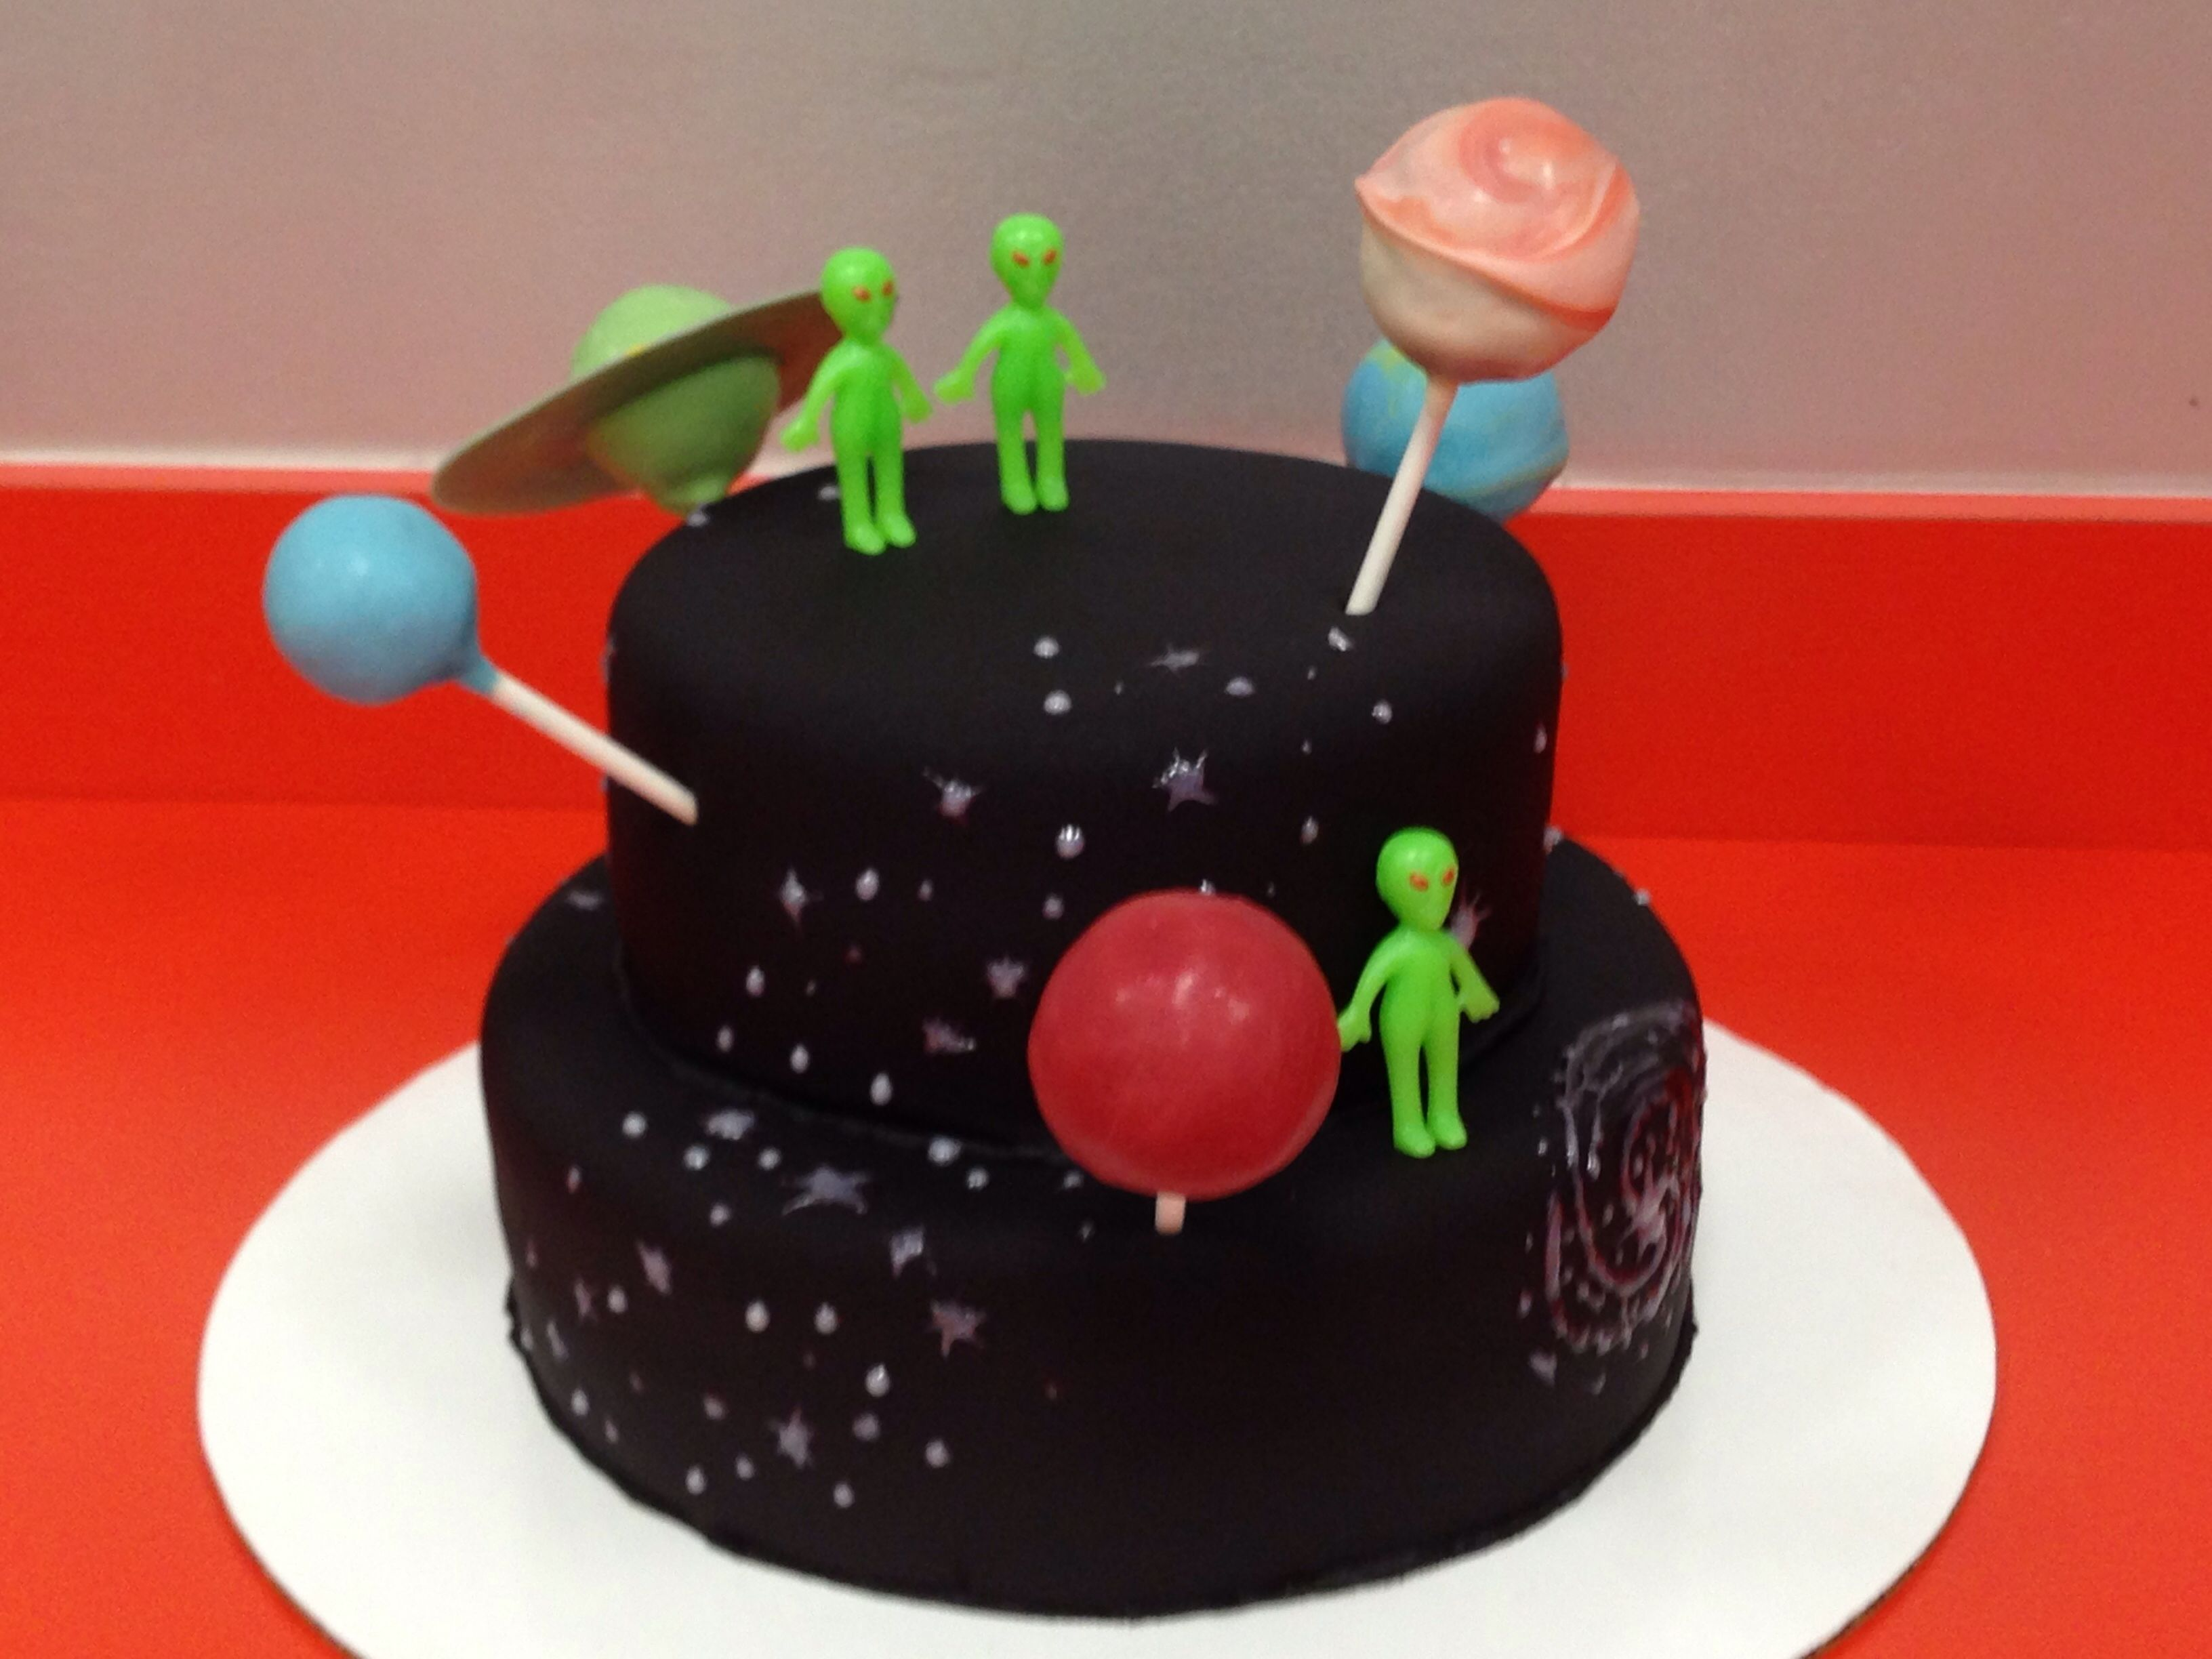 Outer space cake with planet cake pops cake decorating for Outer space cake design